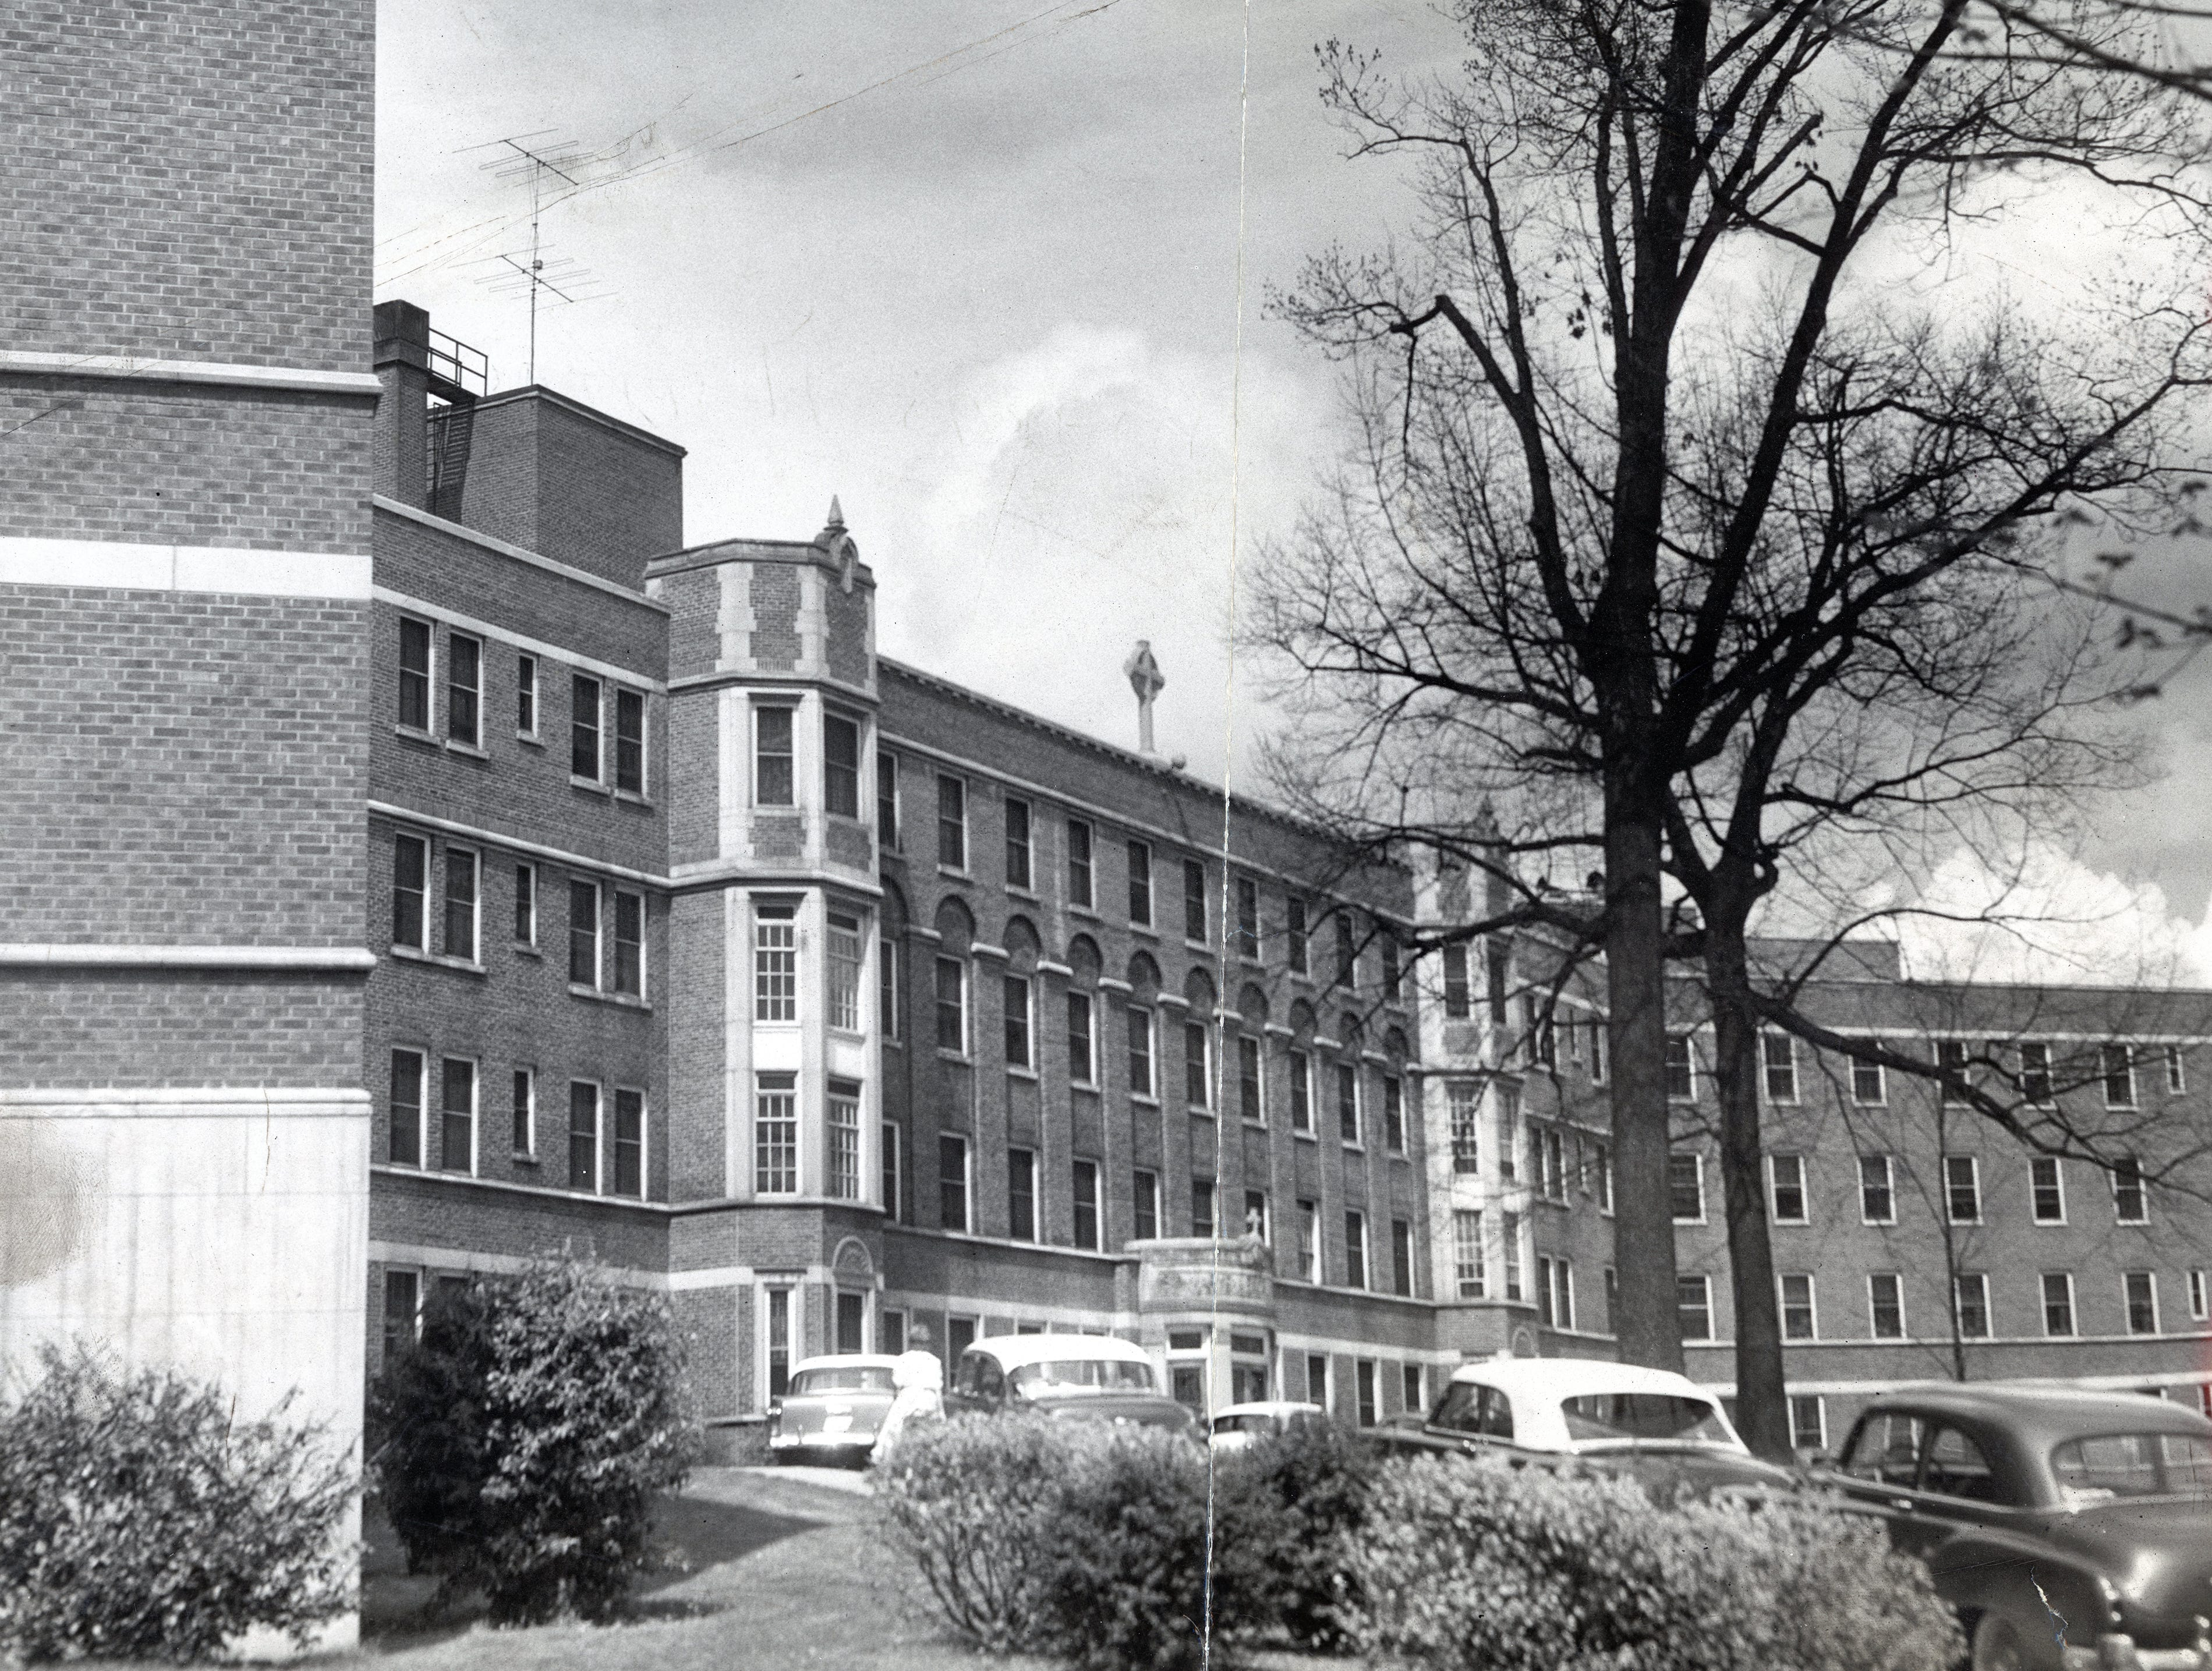 St. Mary's Hospital in April 1955.